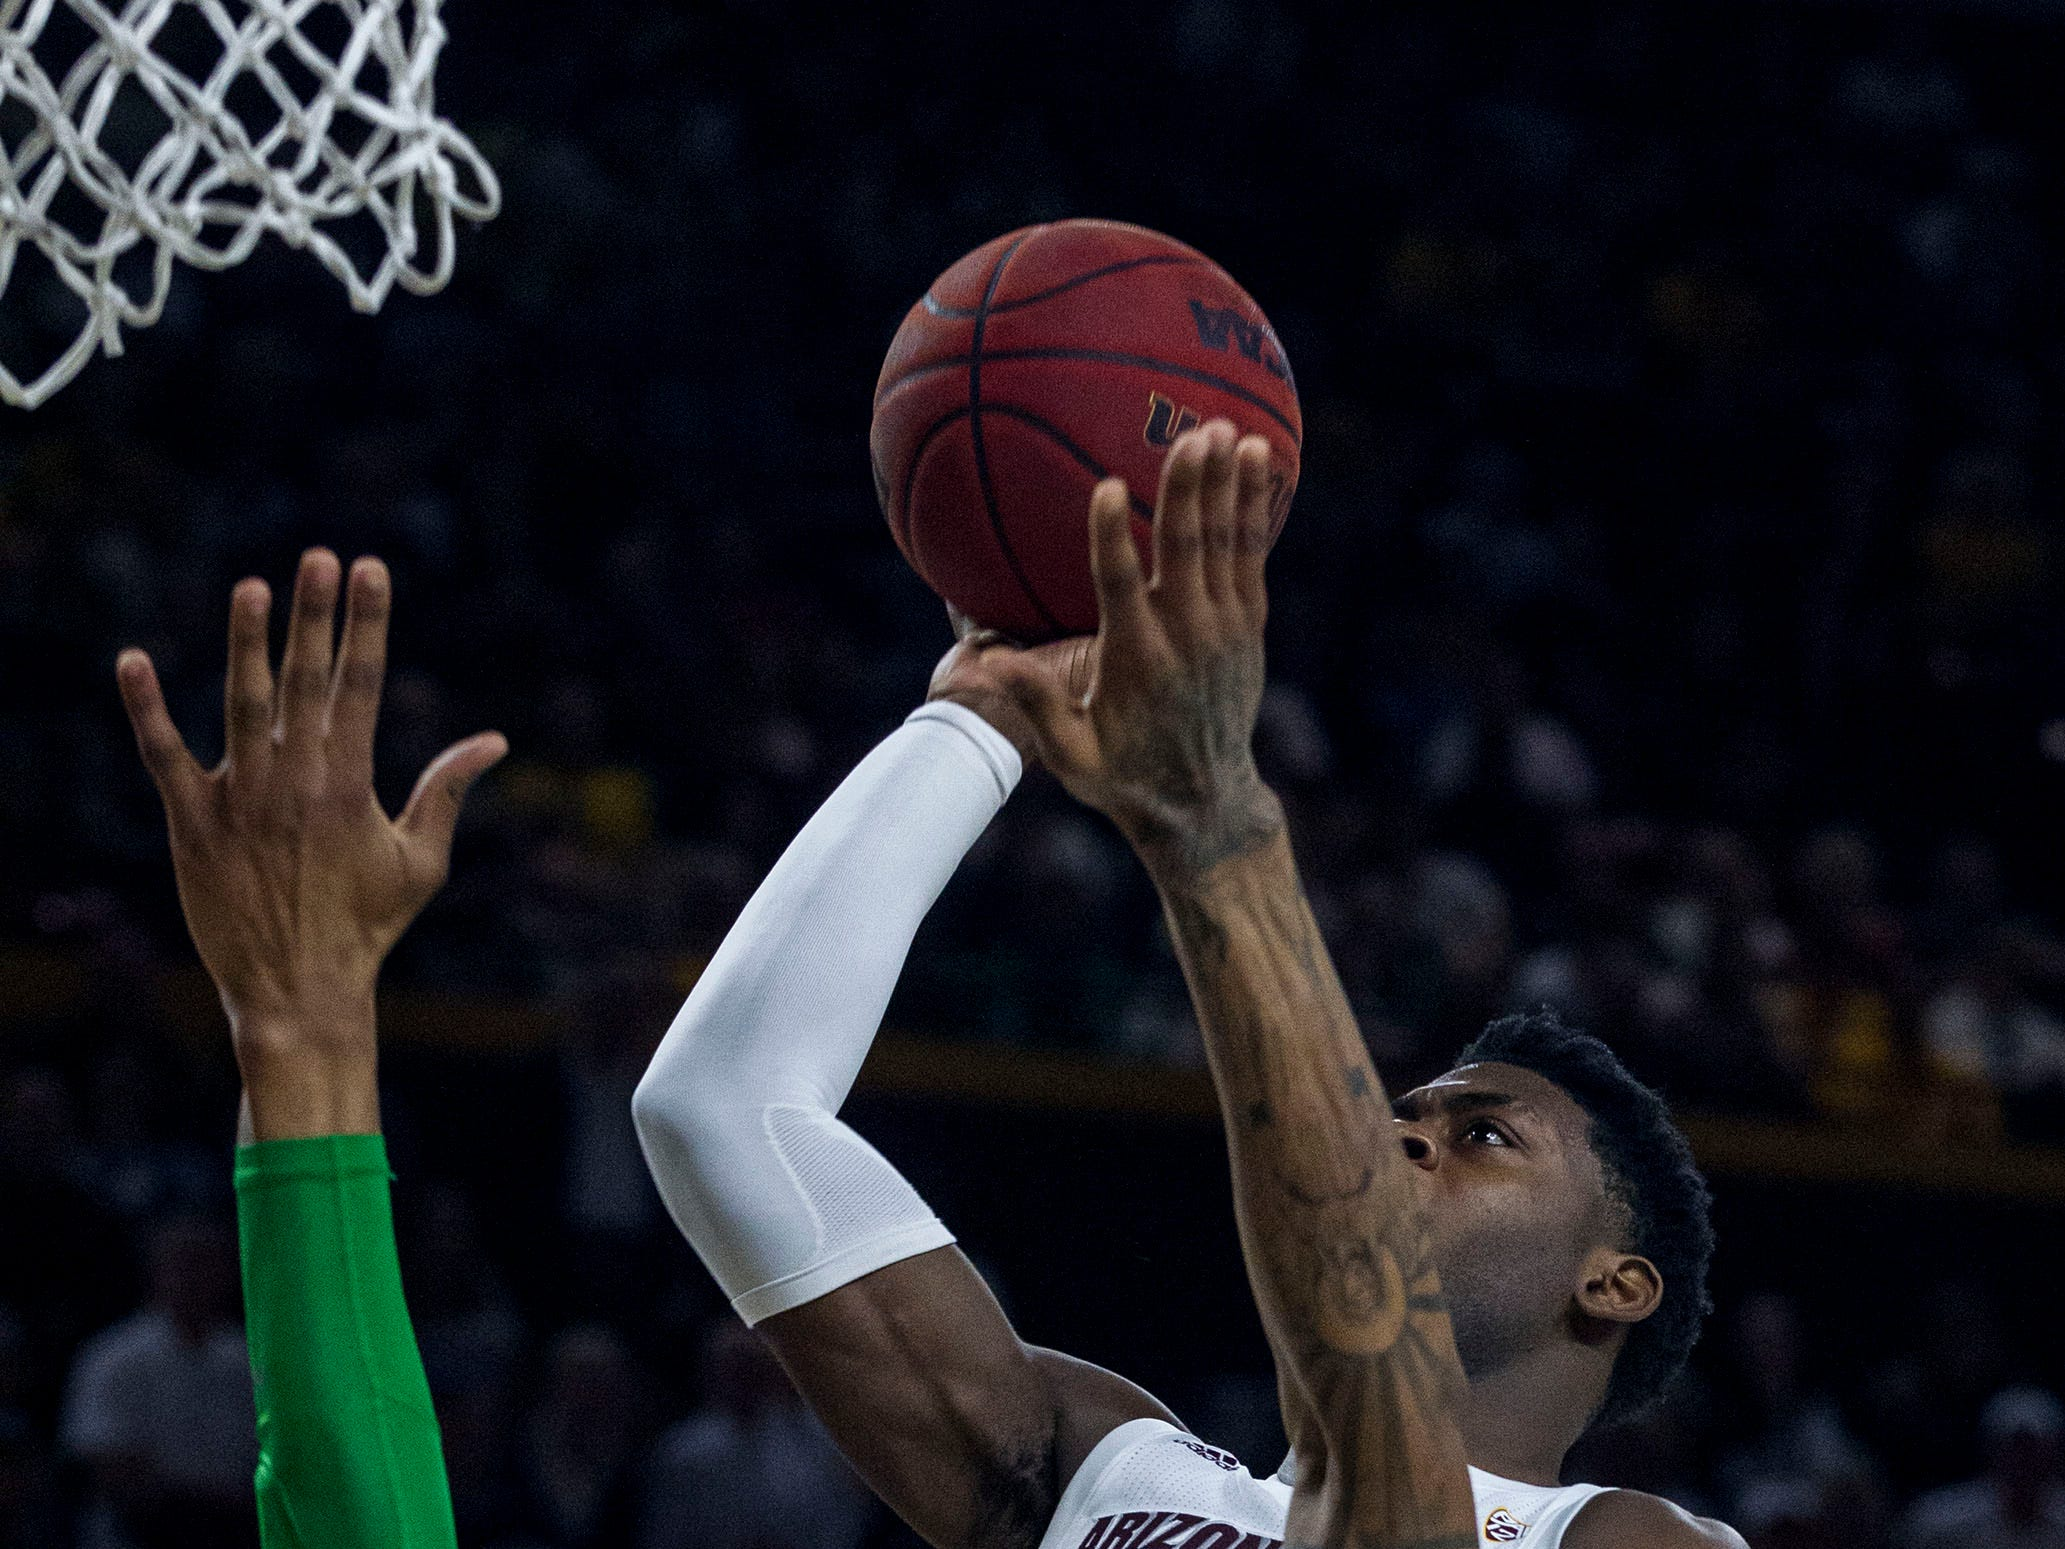 Arizona State's Luguentz Dort (0) drives the lane against Oregon's Kenny Wooten (14) during the second half, Saturday, Jan. 19, 2019, in Tempe, Ariz. Arizona State won 78-64. (AP Photo/Darryl Webb)